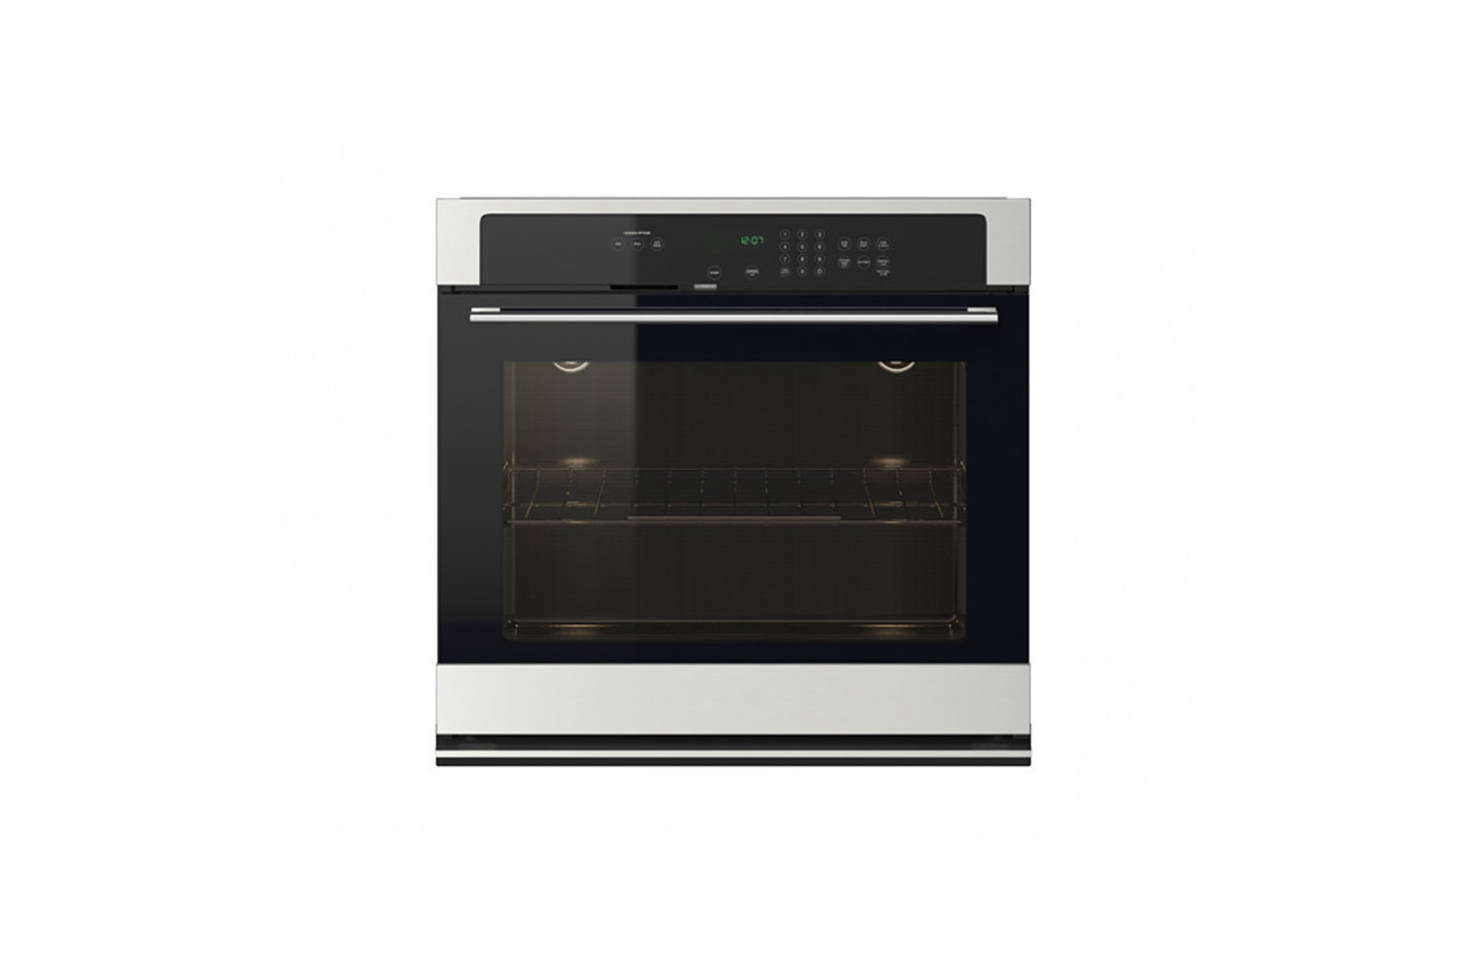 The stacked microwave oven and wall oven are both from Ikea though no longer available. Ikea&#8